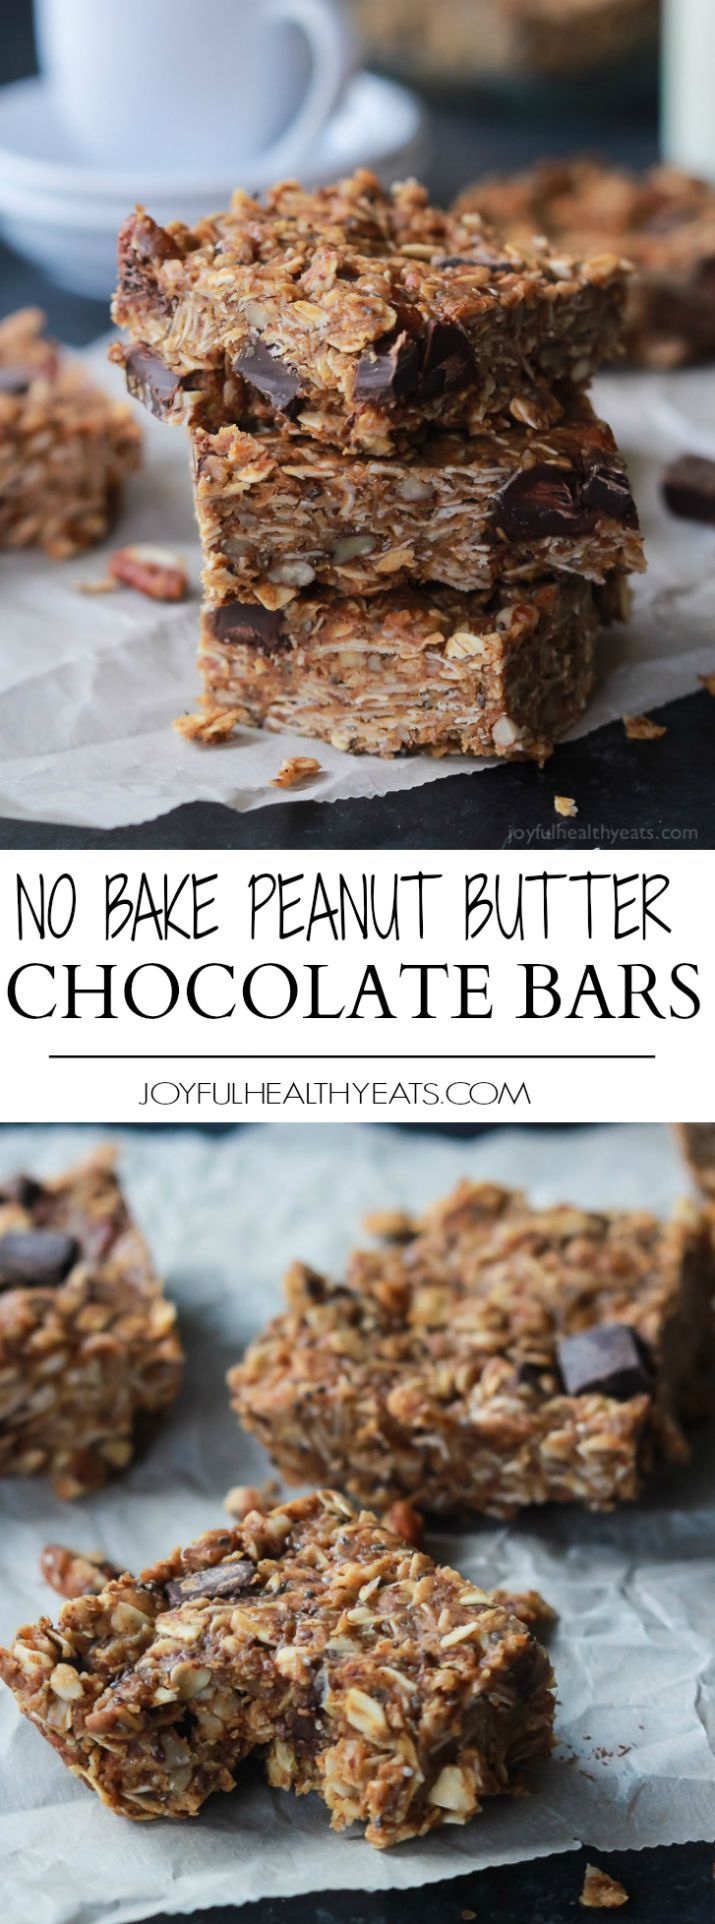 Breakfast never tasted so good with these No Bake Peanut Butter Chocolate Bars, done in 5 minutes! Filled with chocolate chunks, creamy peanut butter, chia seeds, and loads of other nutrients to fill you up! | joyfulhealthyeats.com #recipes